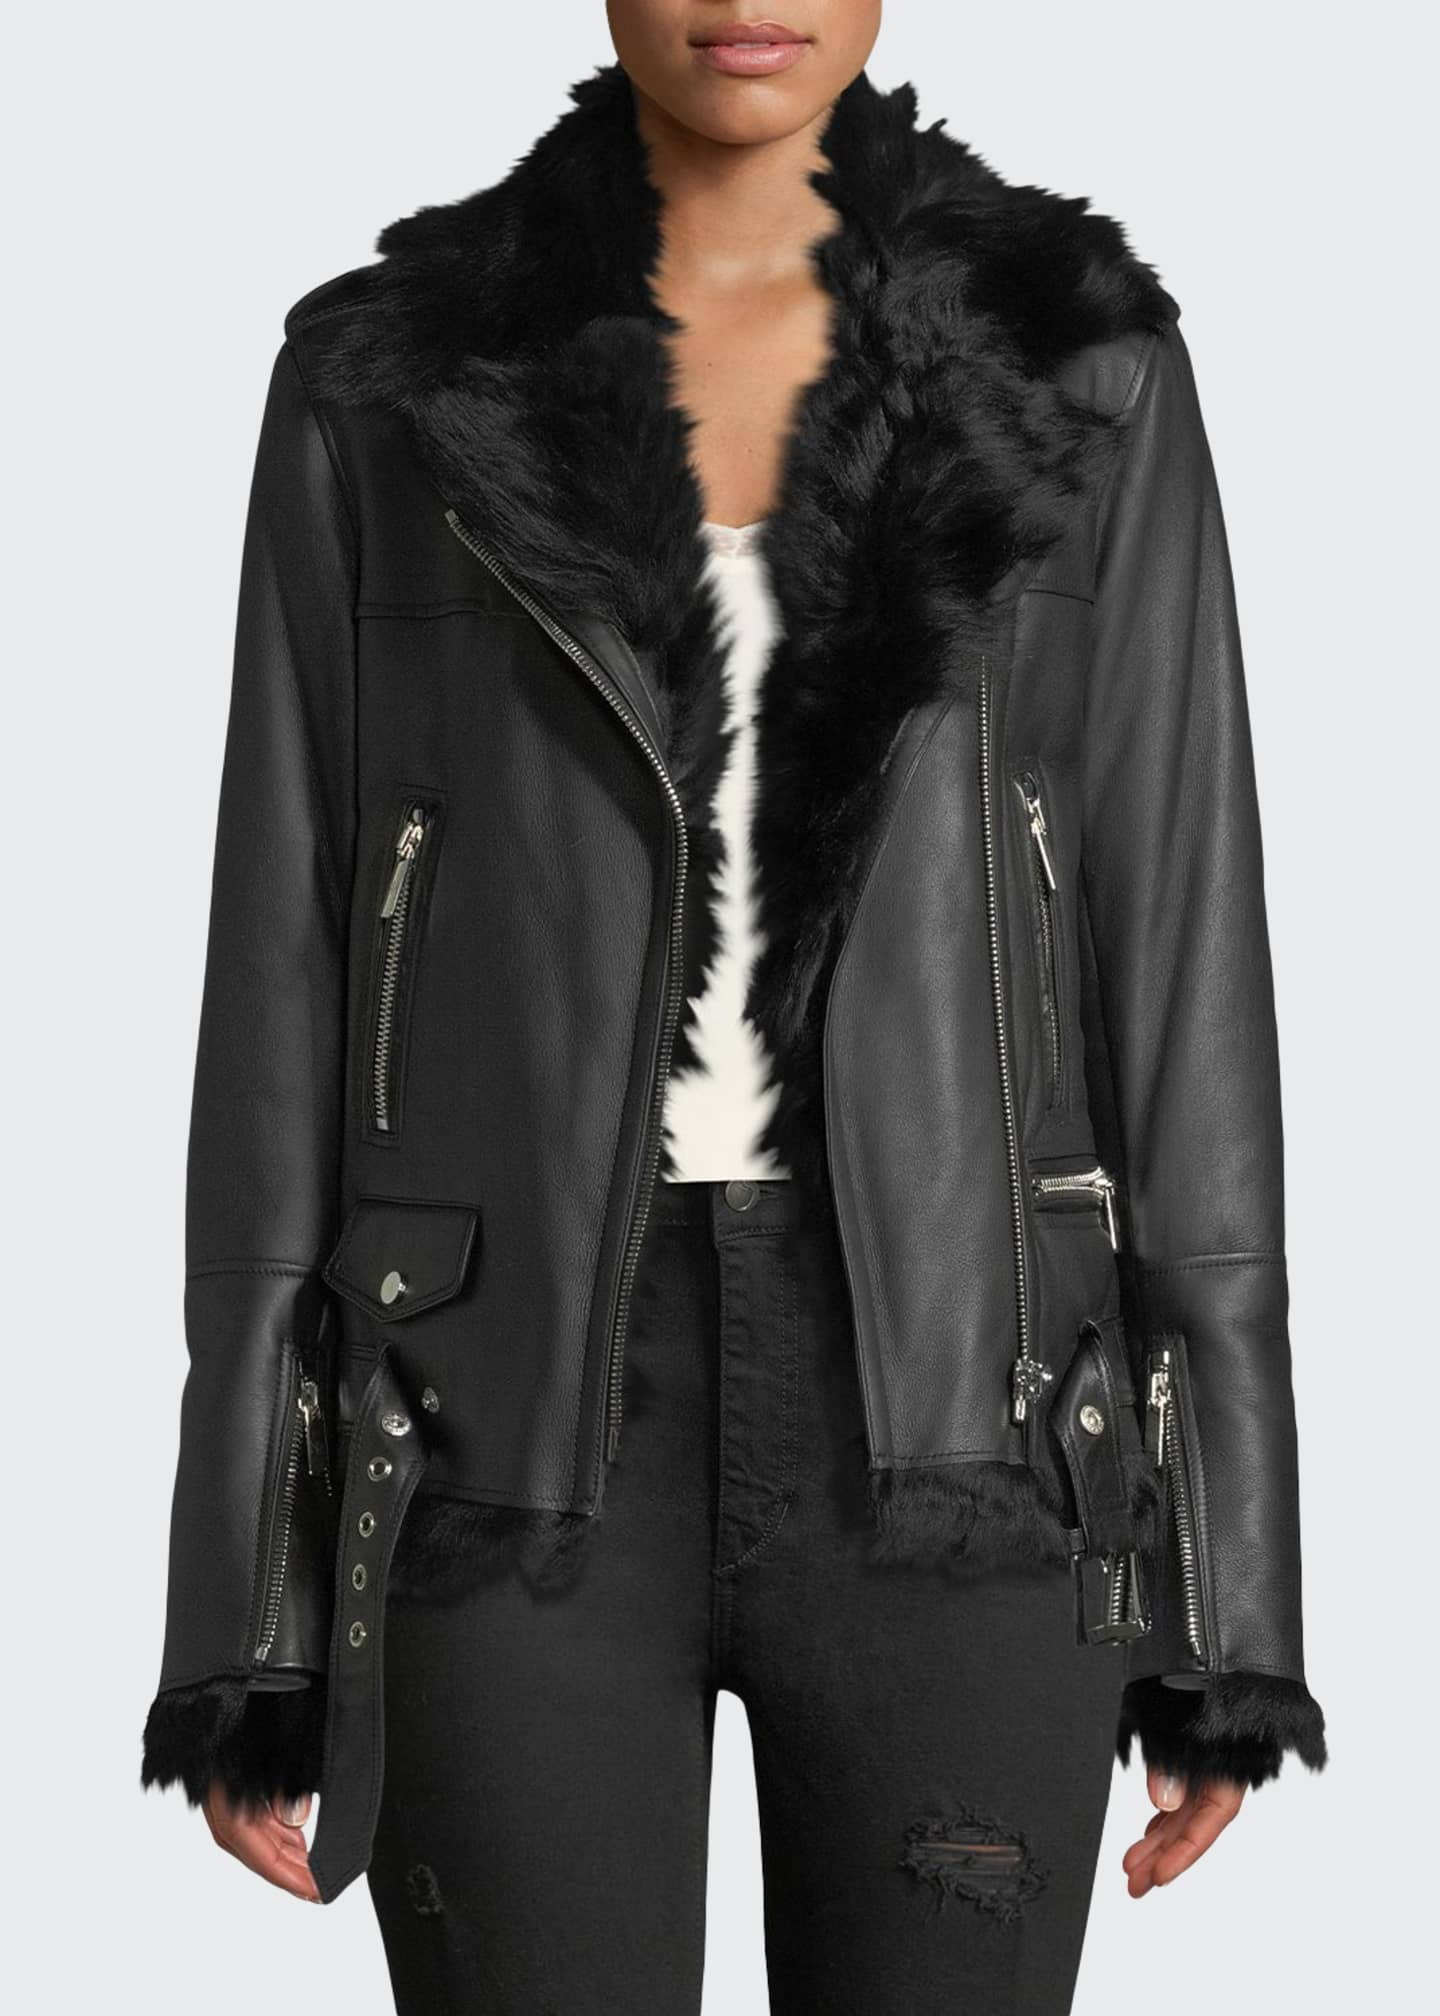 Nour Hammour Shearling-Lined Lace-Up Sides Lamb Leather Jacket